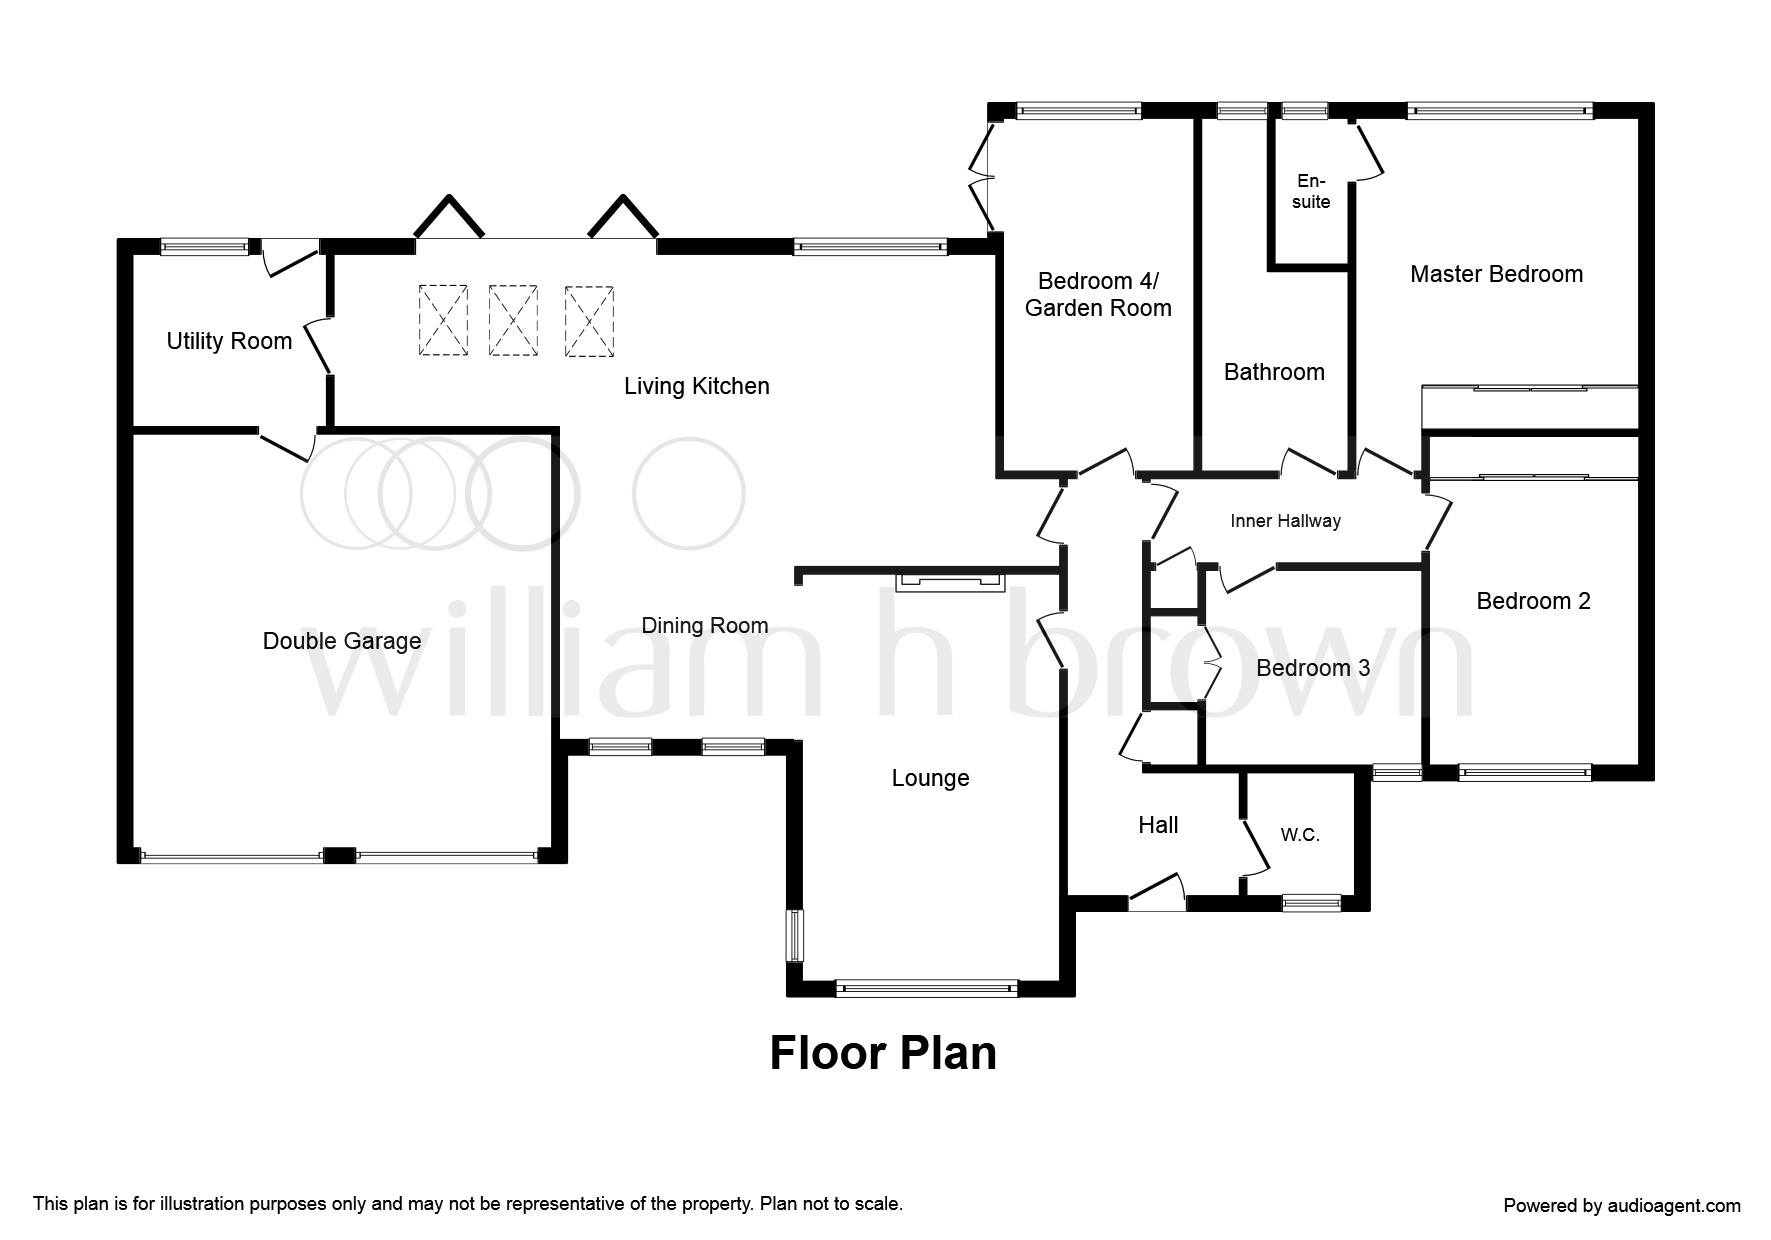 velux plan gallery of house plans for small houses elegant kerala house plan photos and its. Black Bedroom Furniture Sets. Home Design Ideas